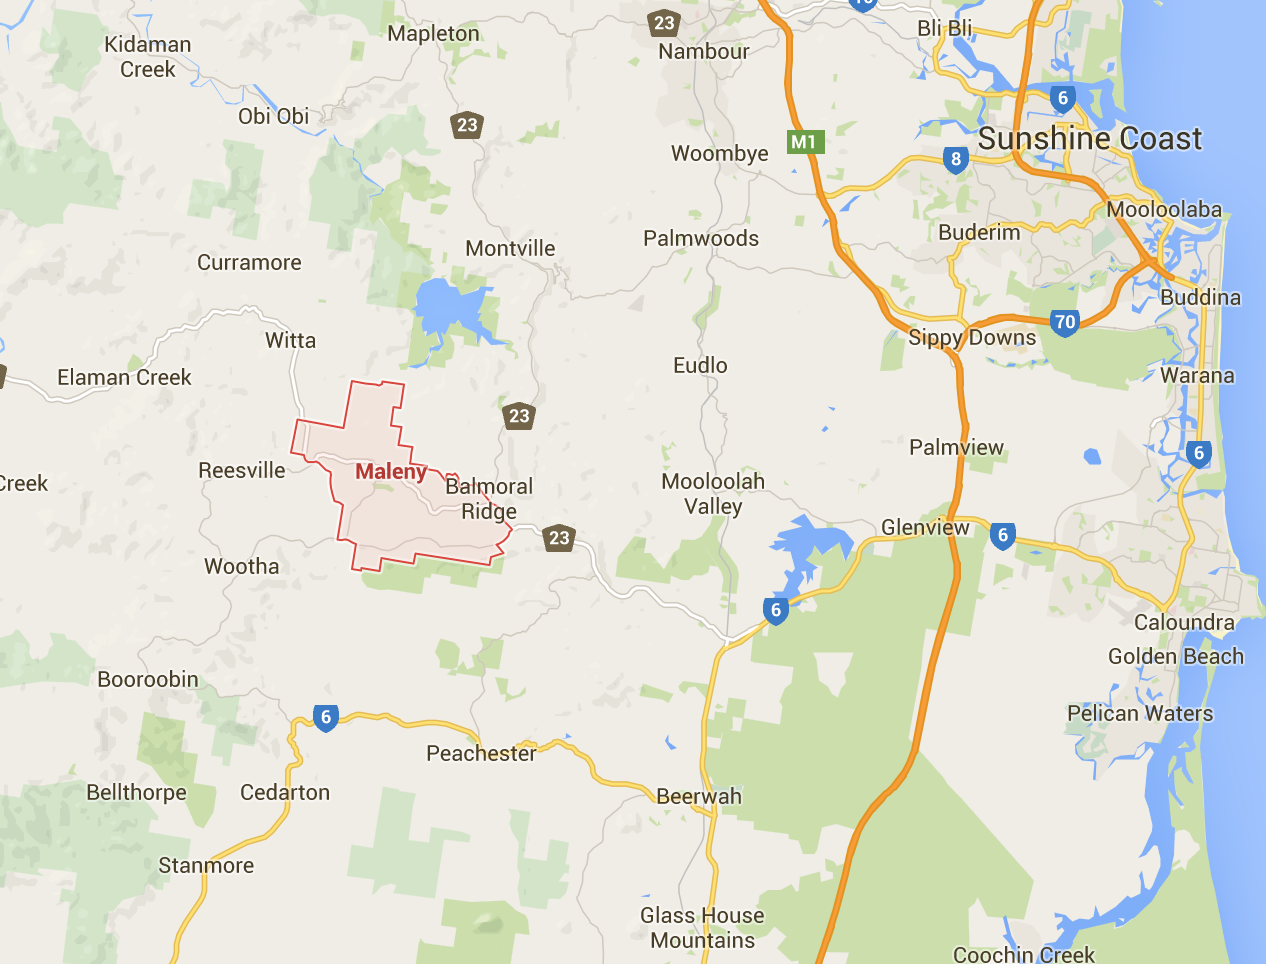 Maleny lawn mowing - just tell us where you are on the Google map and we'll organise to get your lawn mowed!